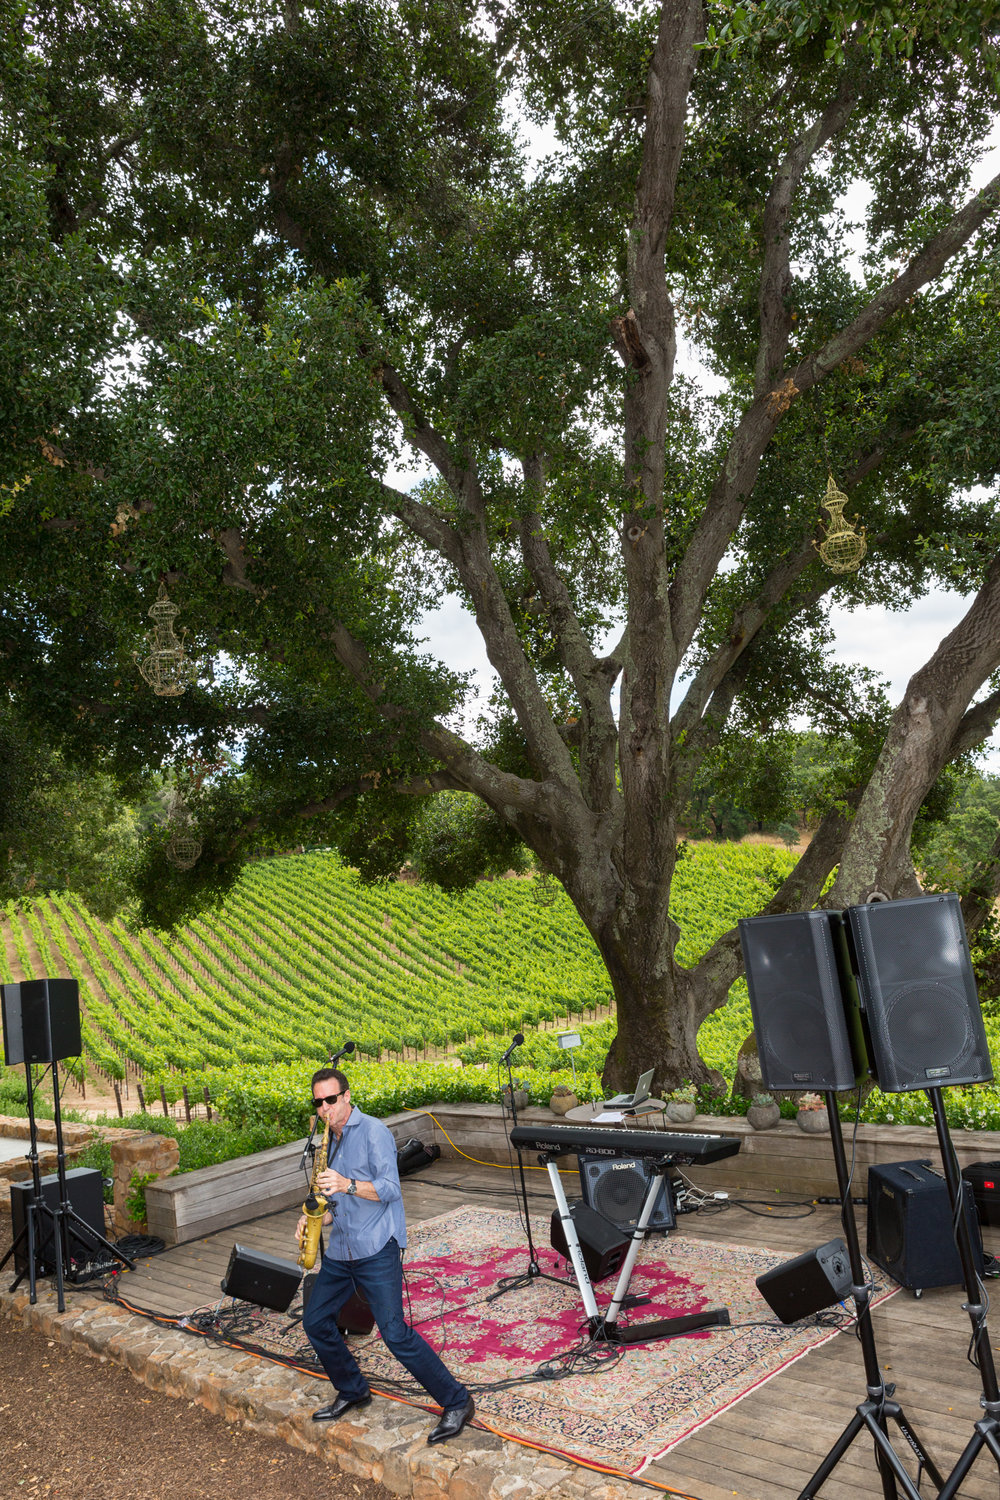 IMG_4827-06-09-17- GARGUILO WINERY - VIP  -chyna photography.jpg